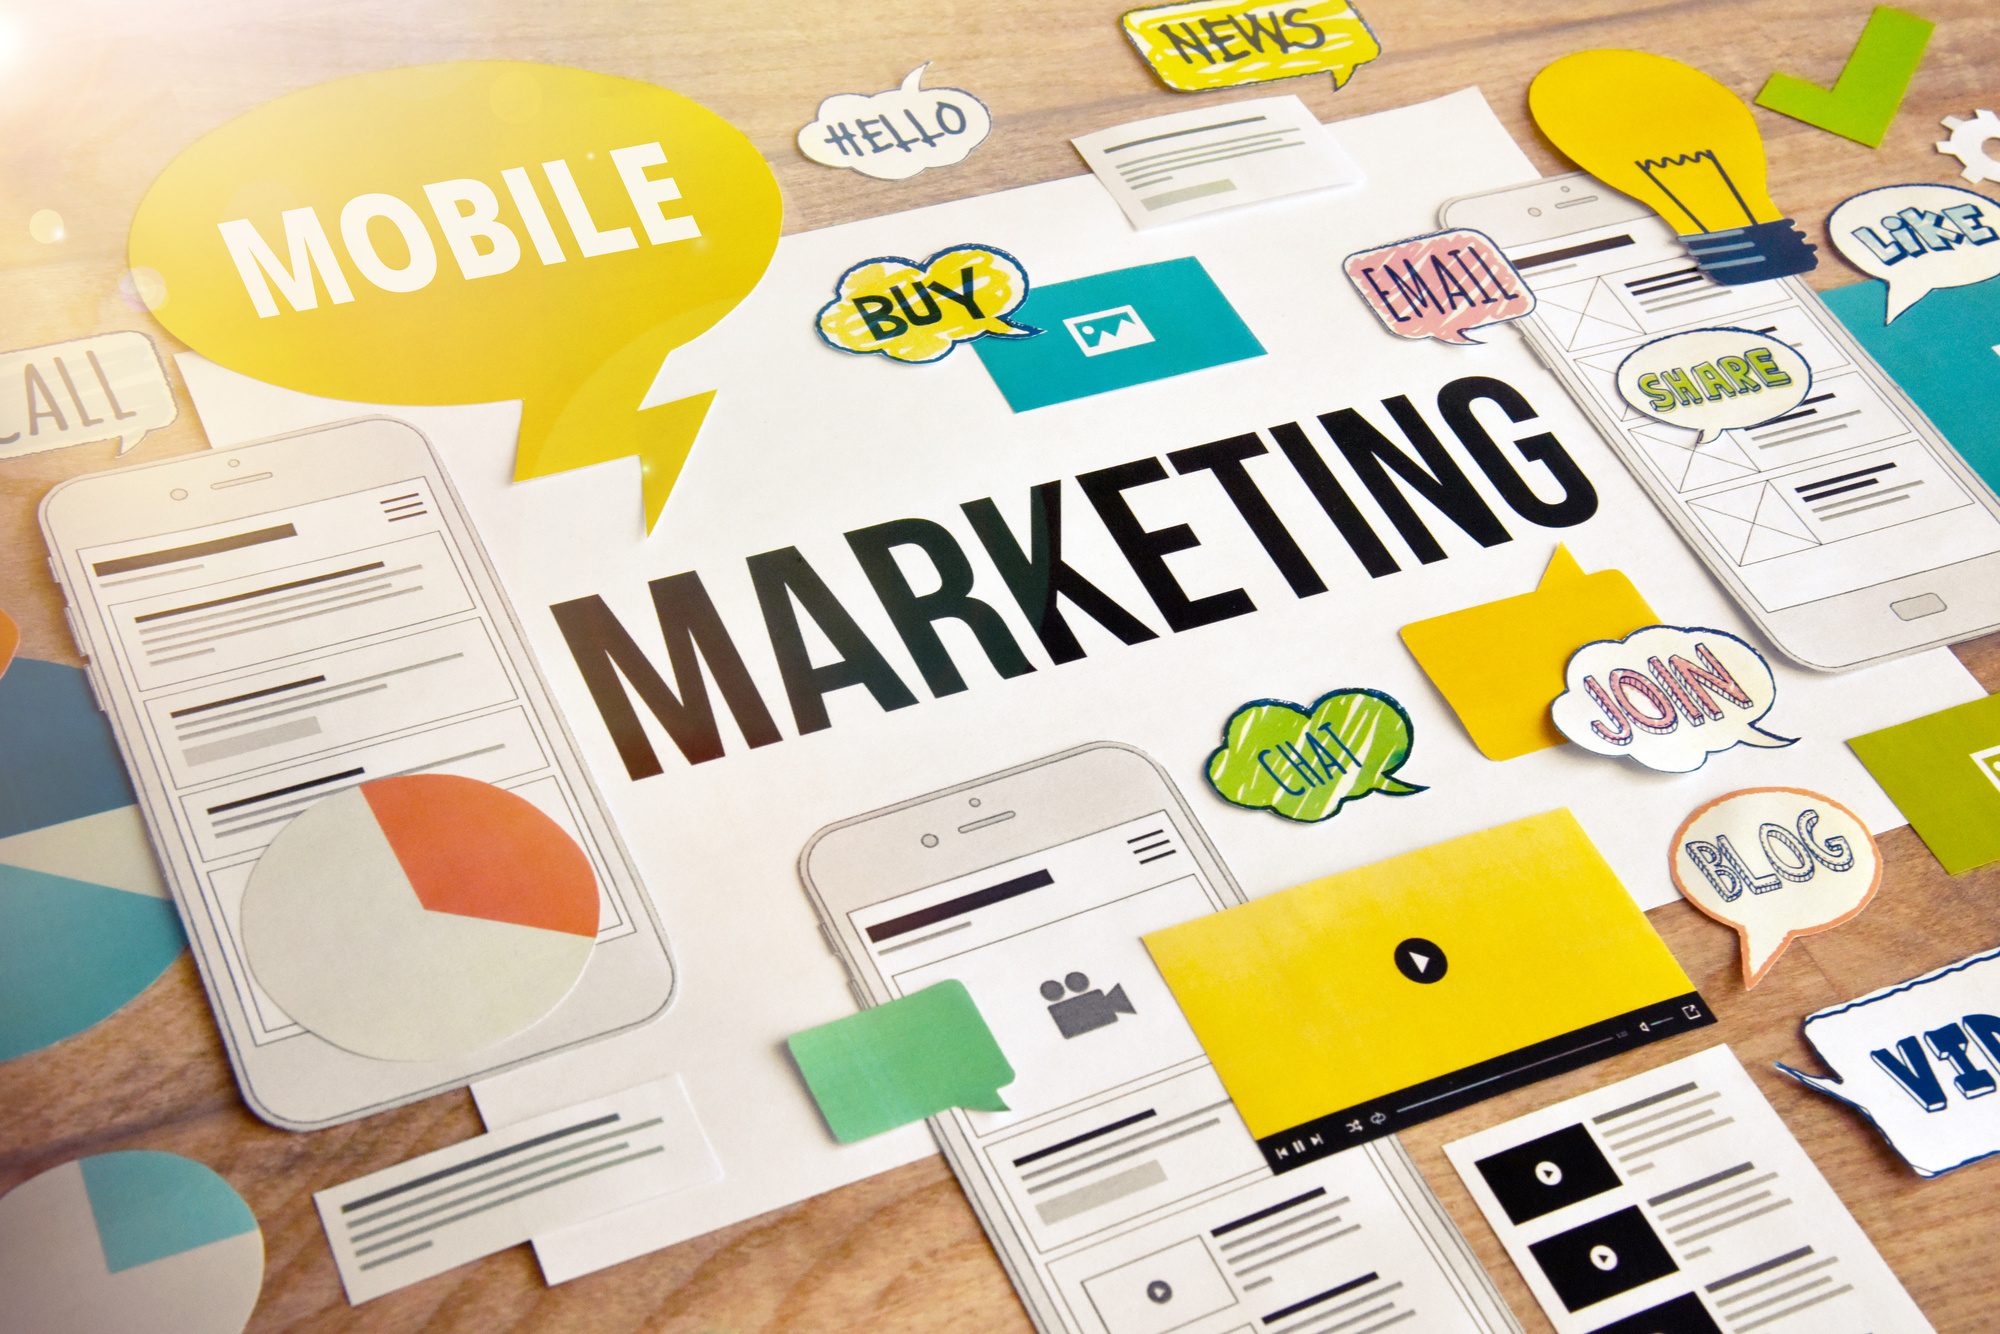 Accelerate Leads and Sales Today With These Mobile Marketing Tips